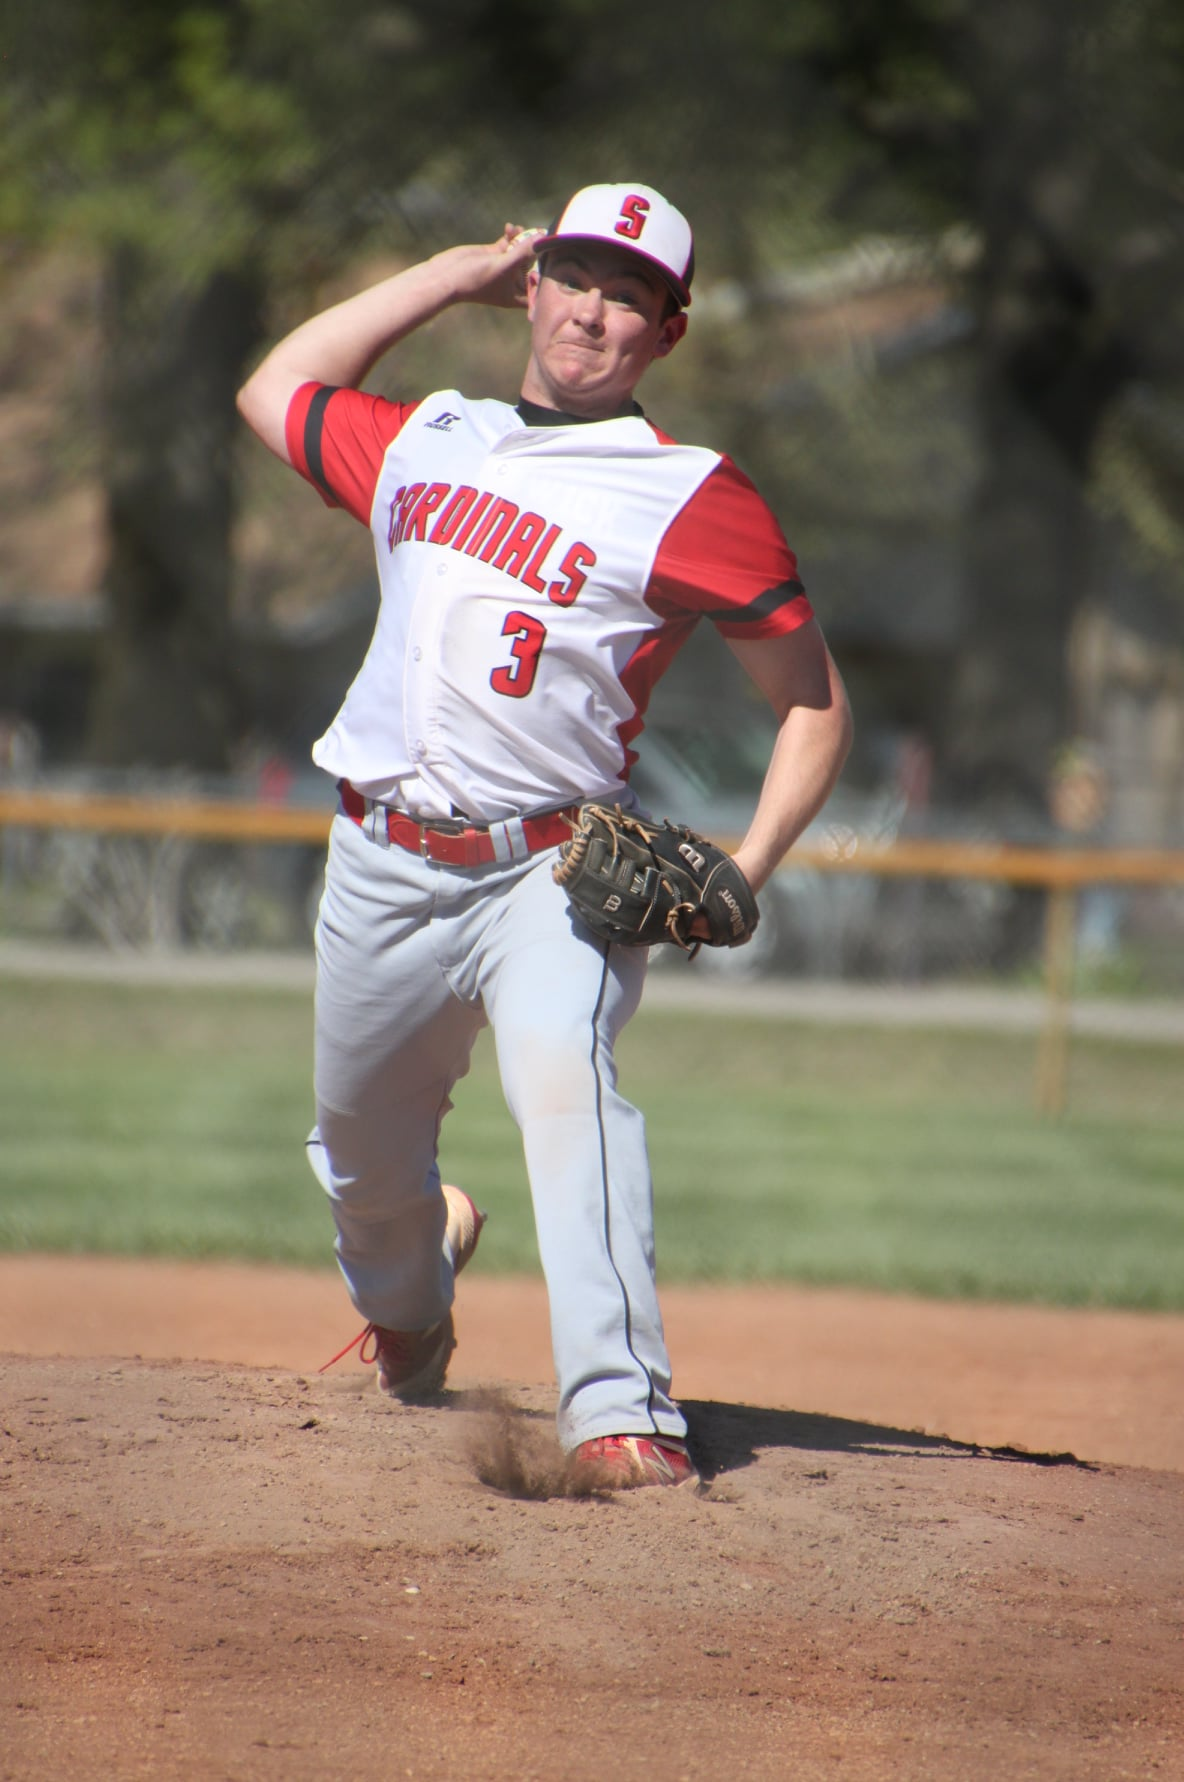 Crumrine named KABC Pitcher-of-the-Year